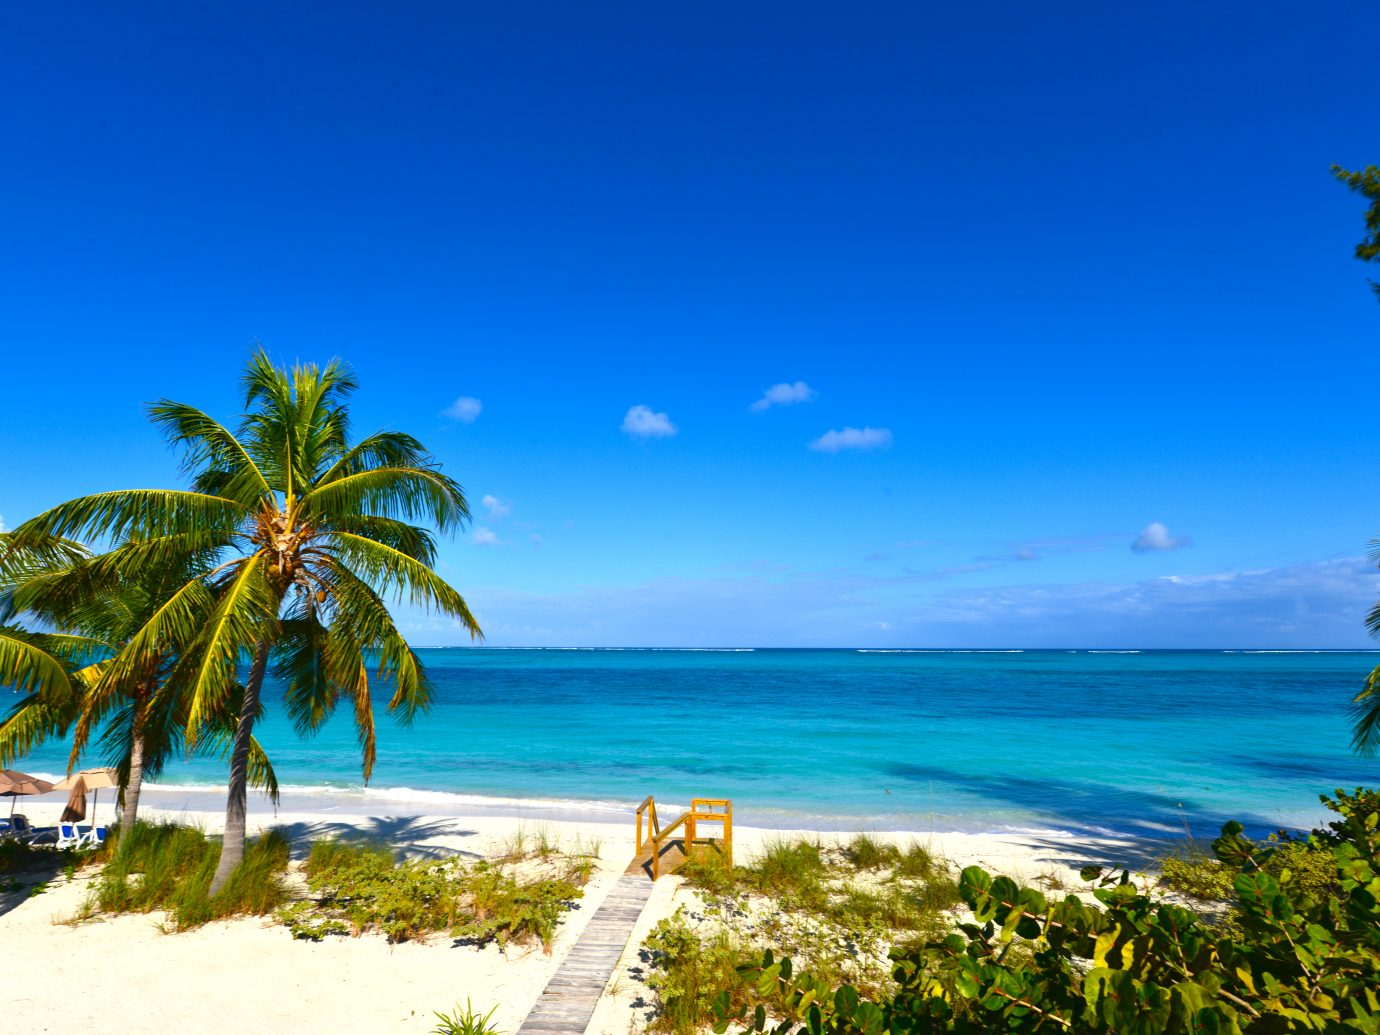 A sunny day at Grace Bay Beach in Turks and Cacos.